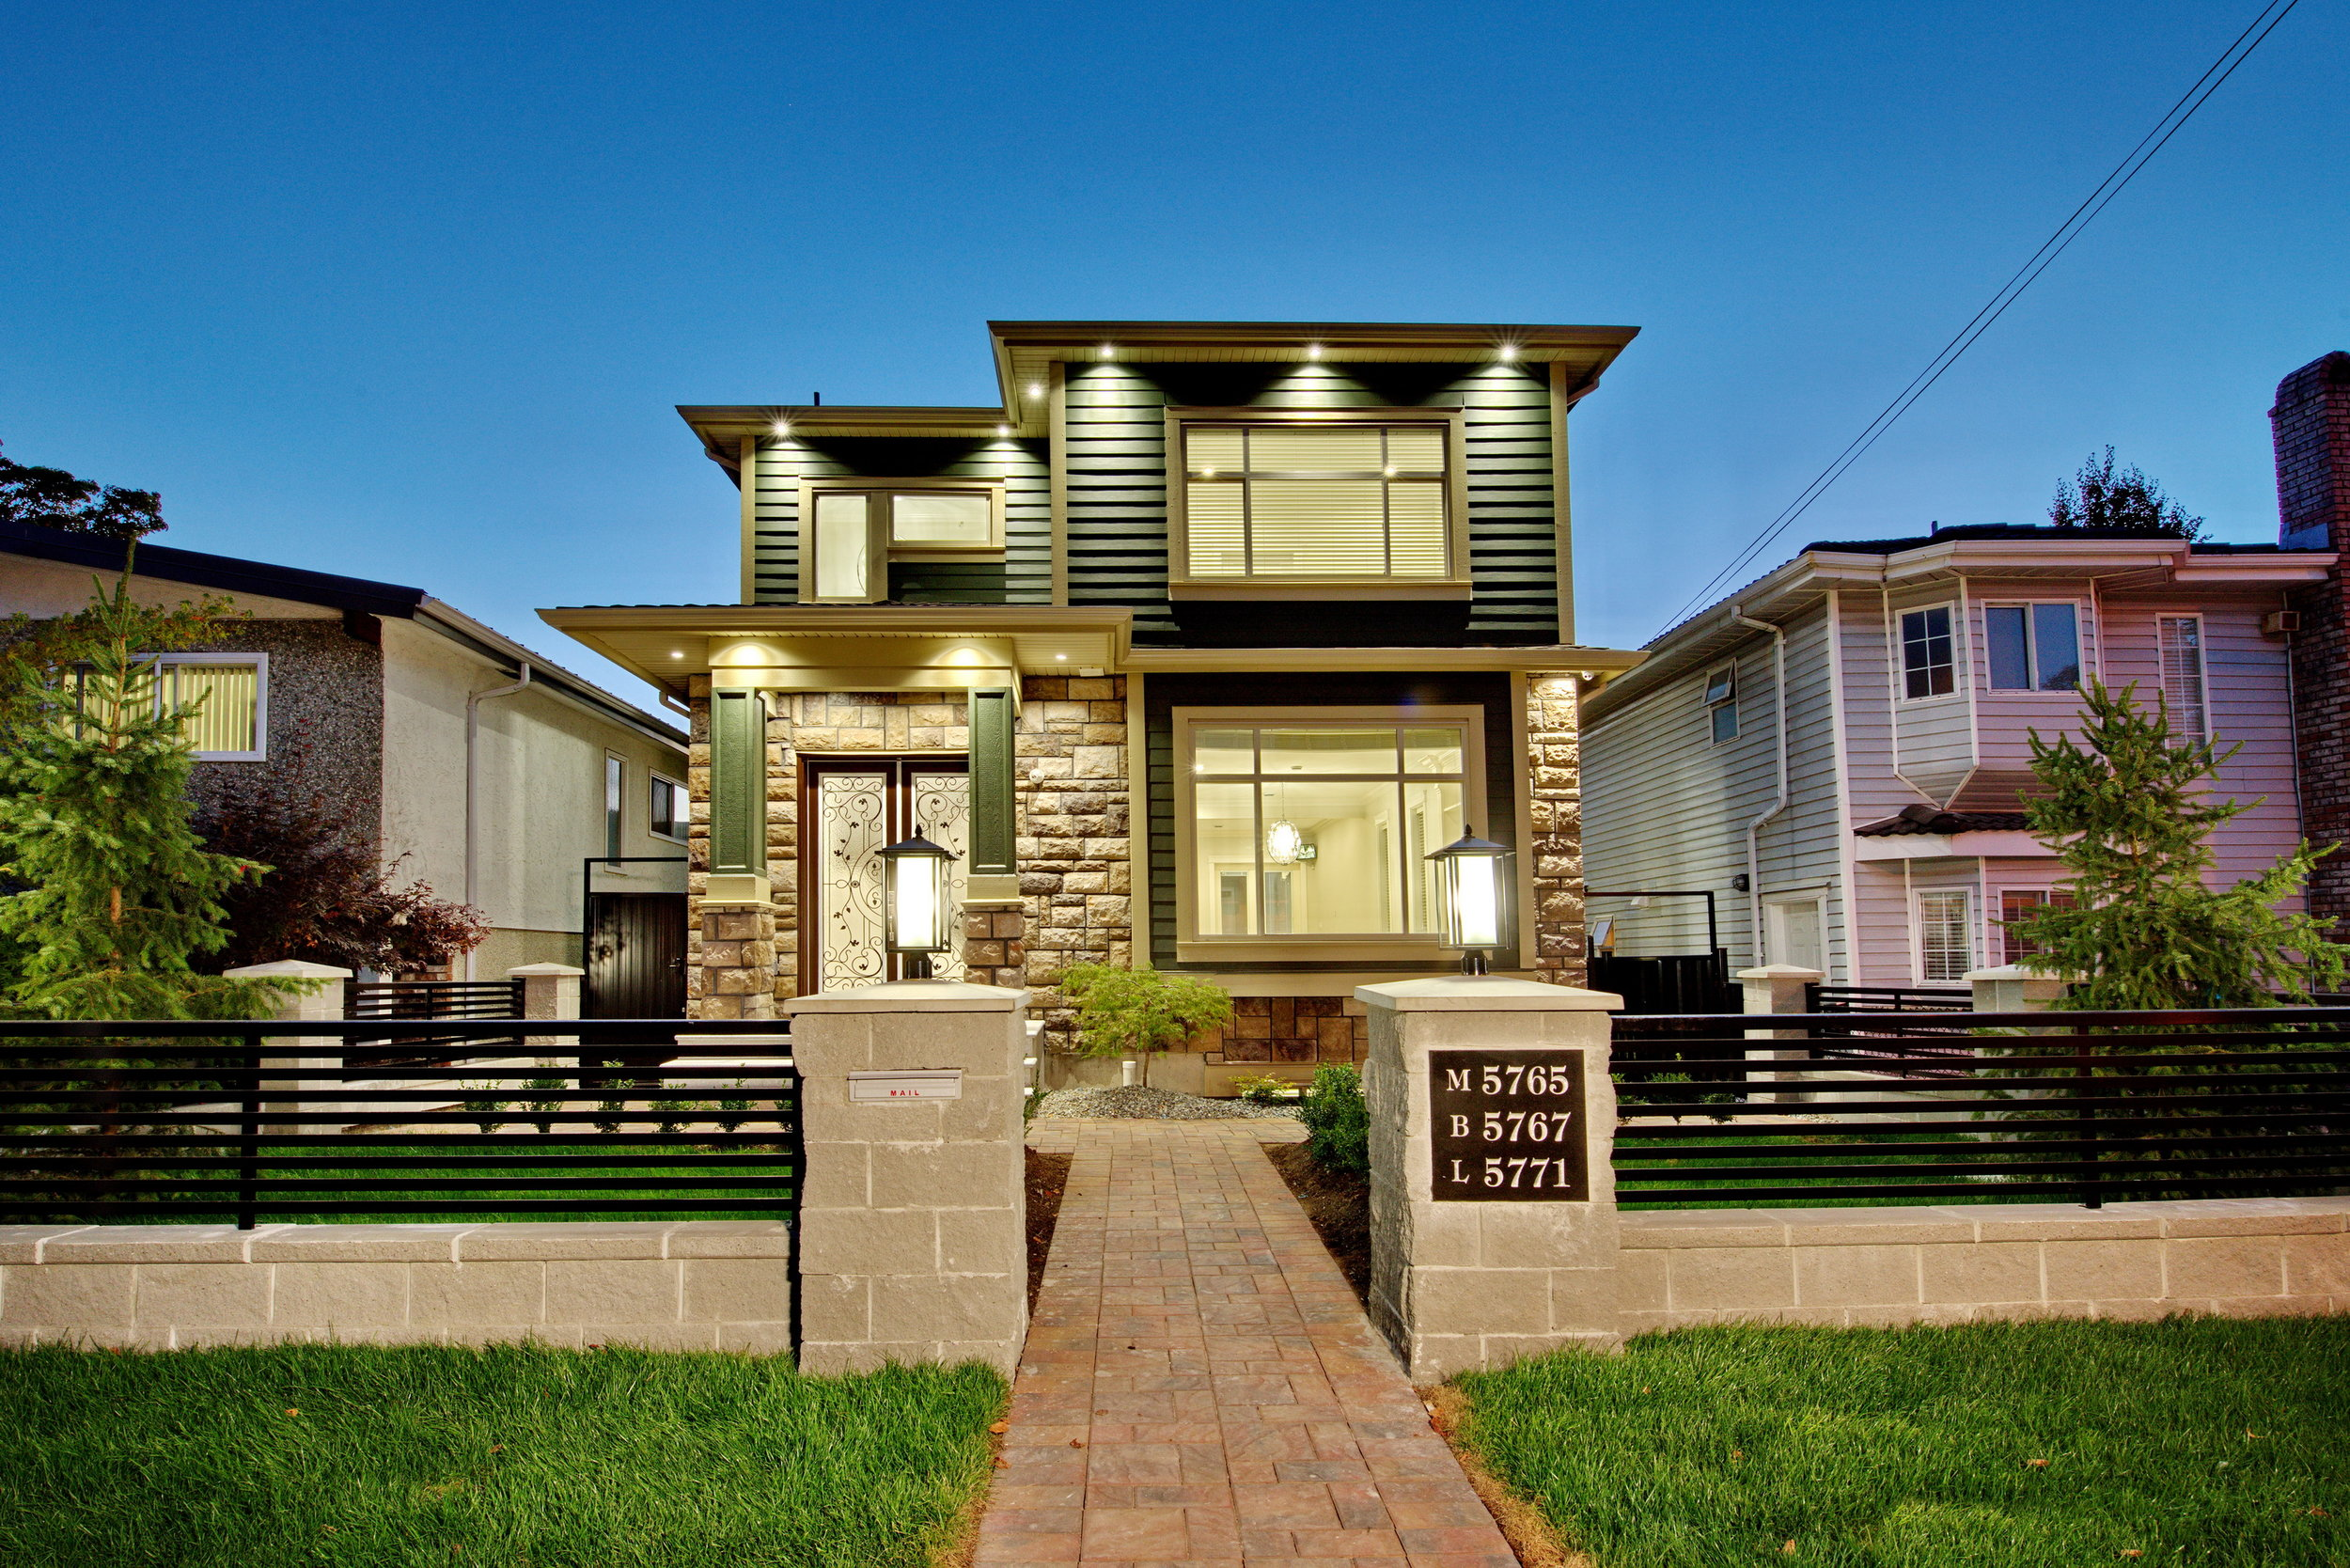 5765 Wales St. - 7 Bed/5 Bath Custom Home + LanewayVancouver, BC2,409 sq. ft.